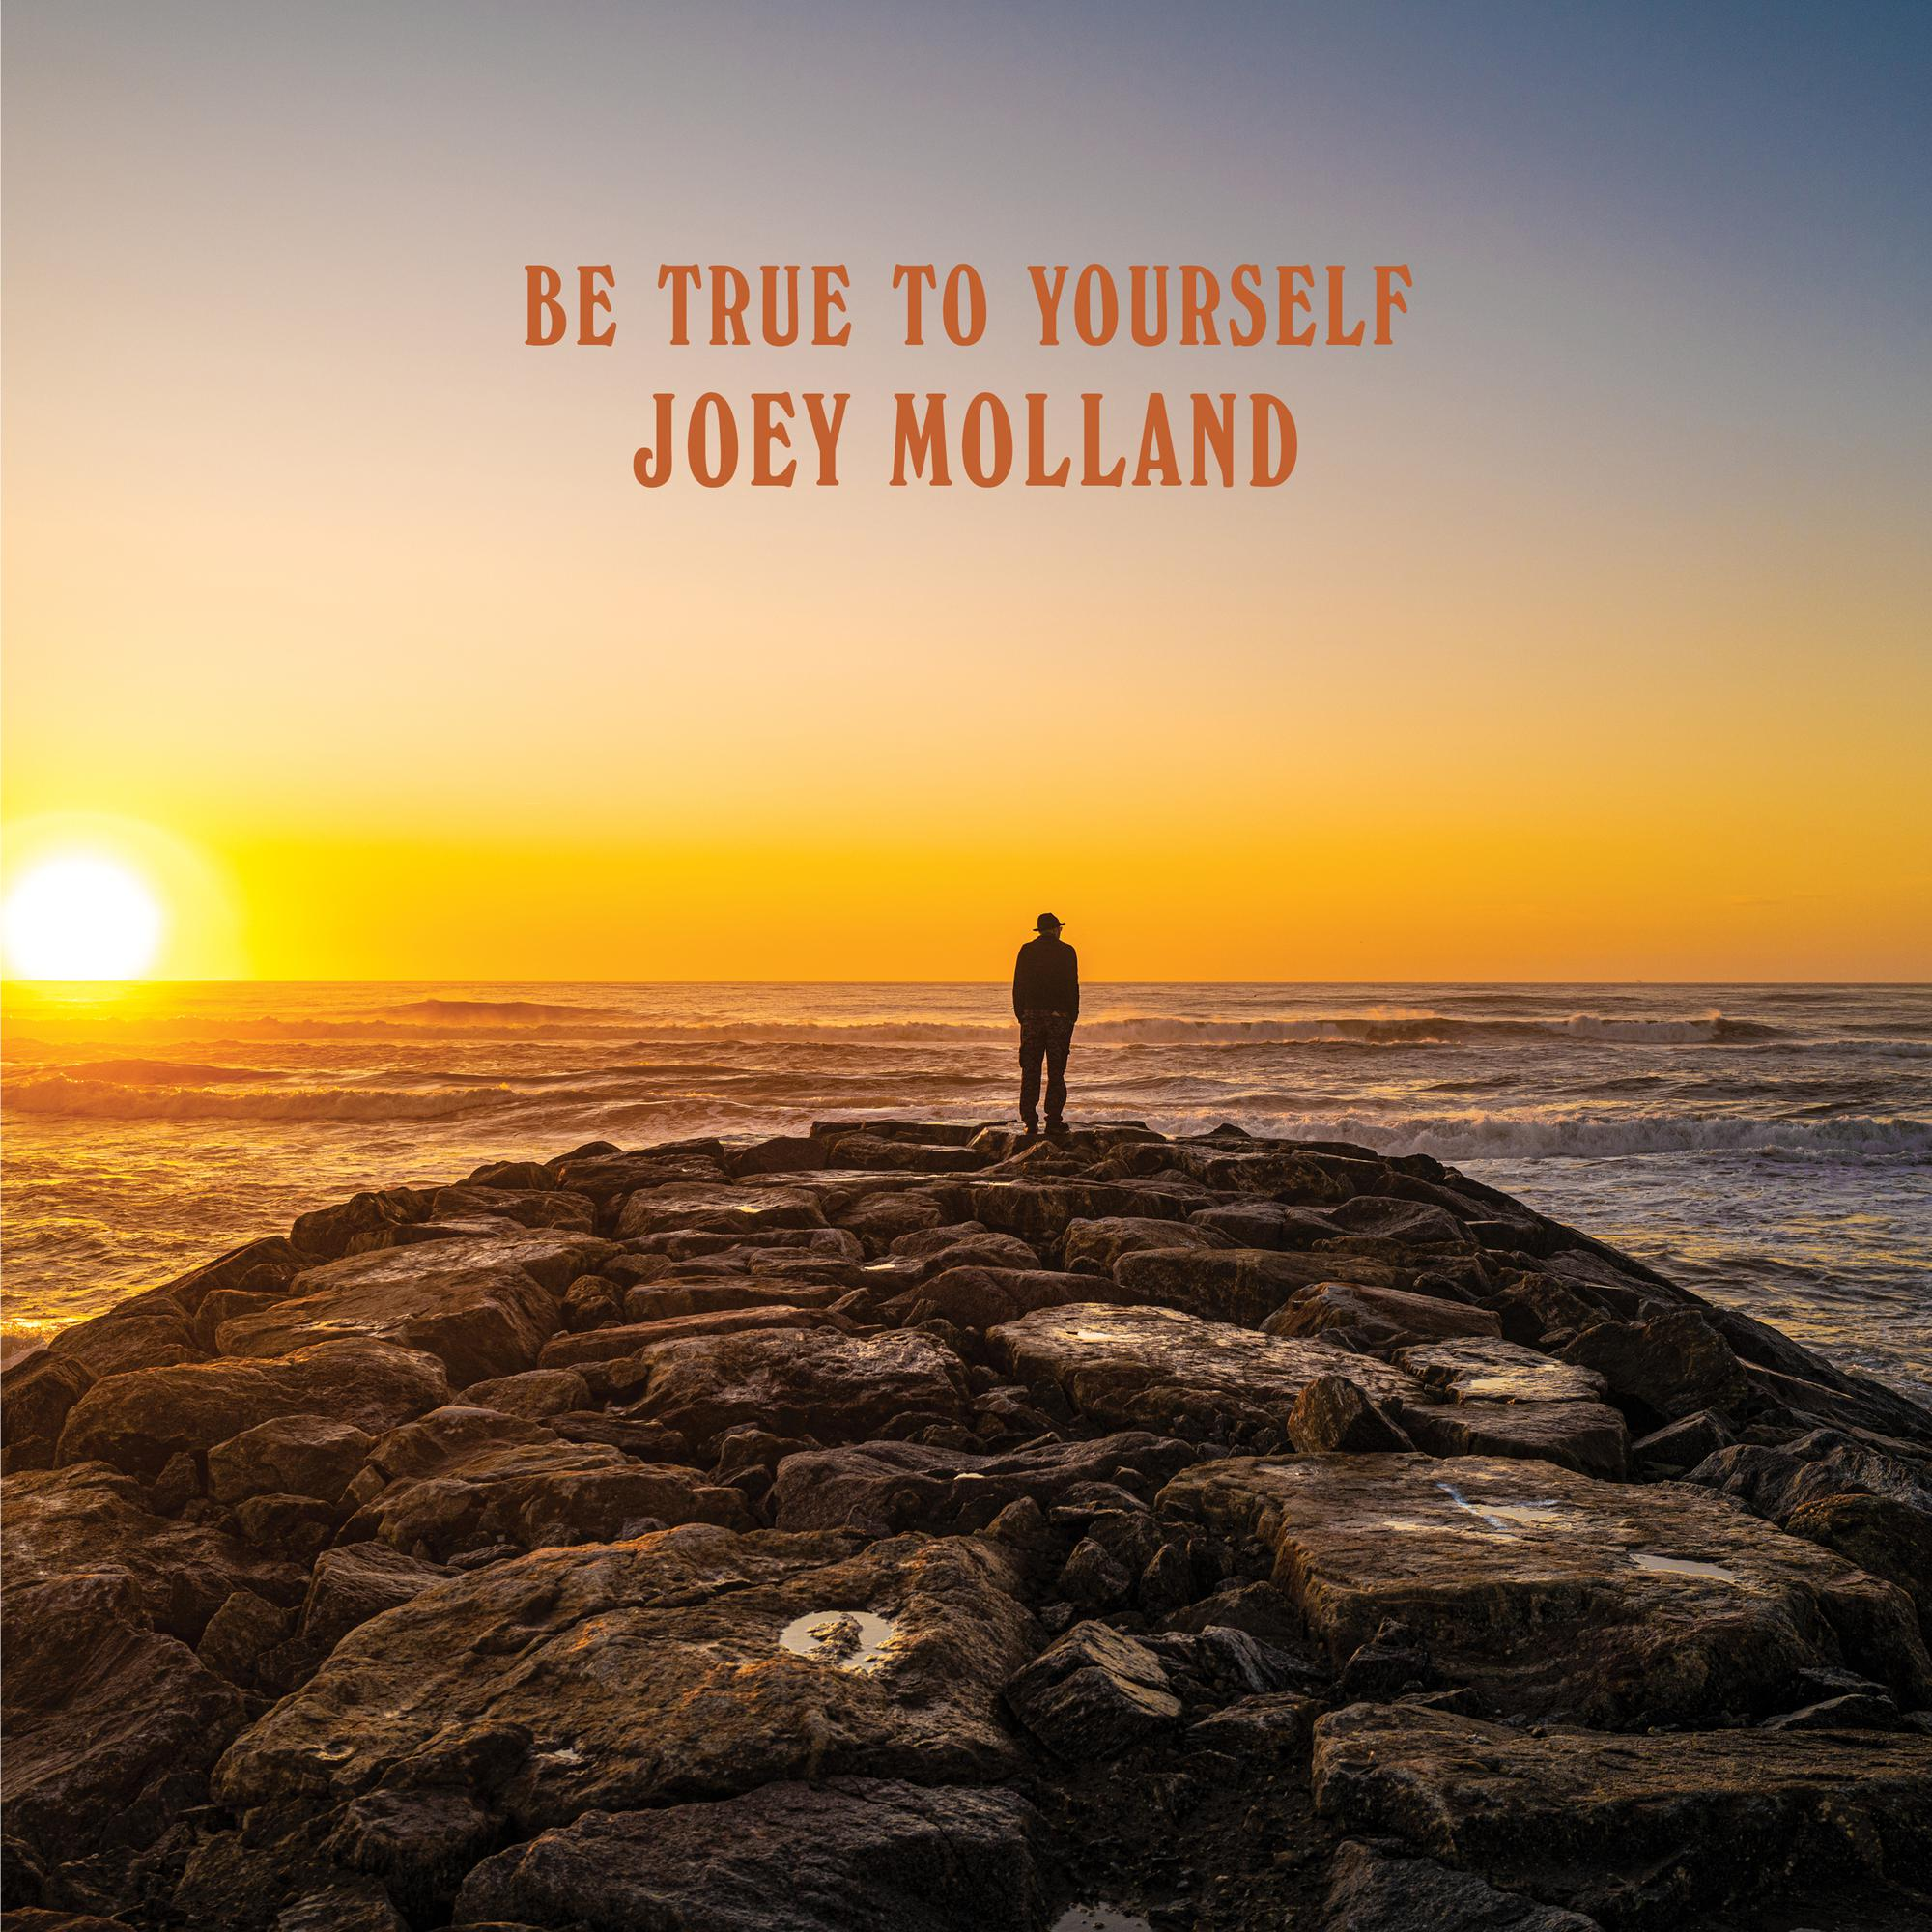 Joey Molland - Be True To Yourself [RSD Drops 2021]